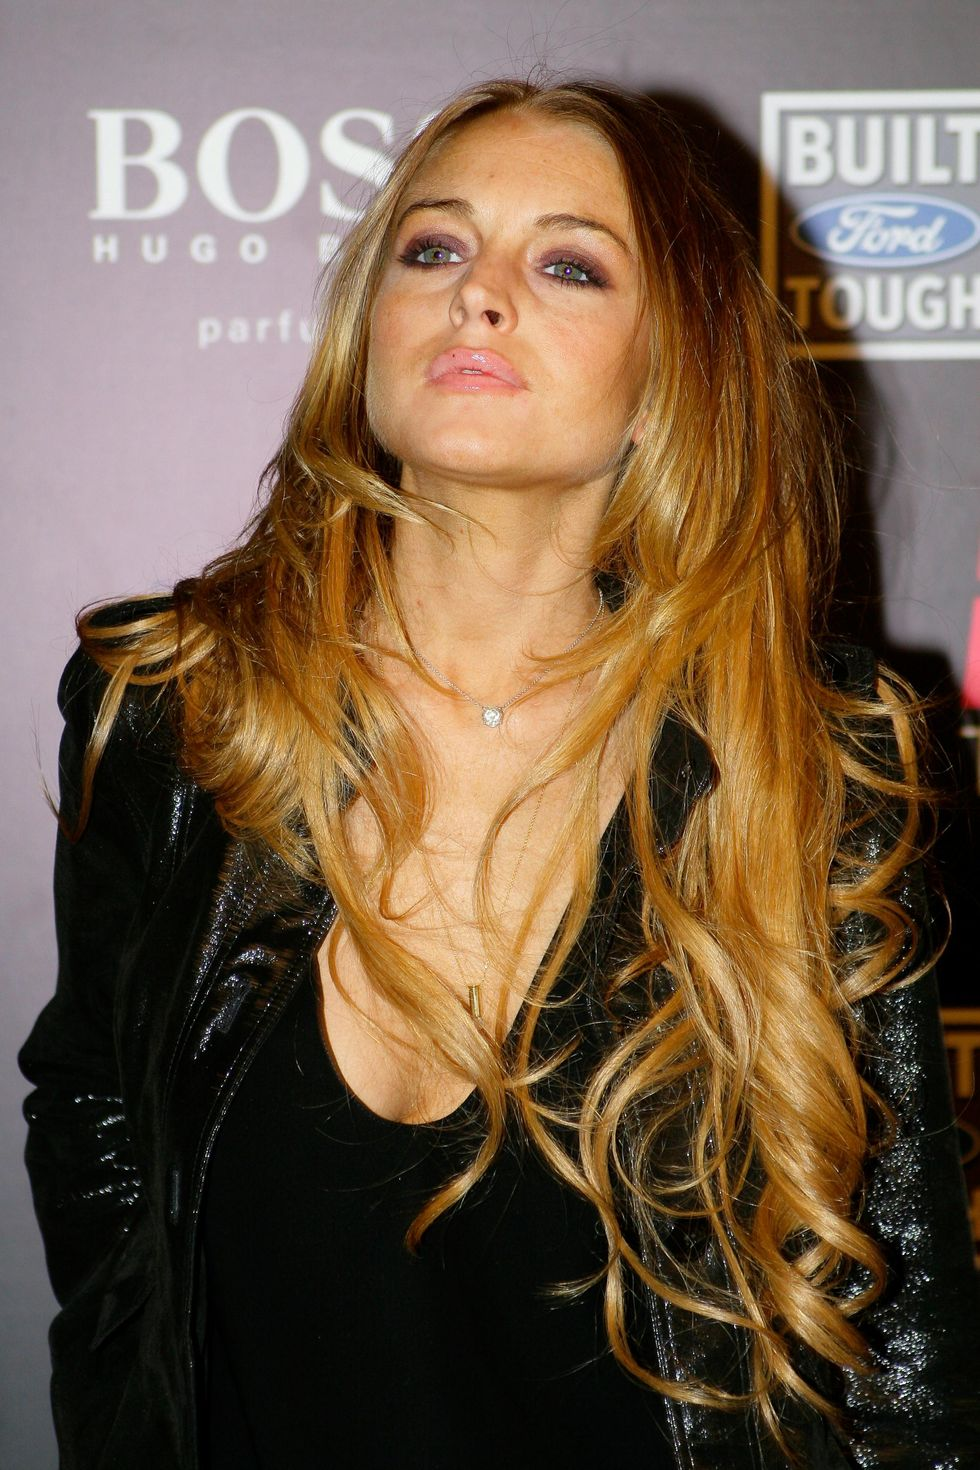 lindsay-lohan-espn-the-magazines-next-big-weekend-2009-super-bowl-party-in-tampa-01